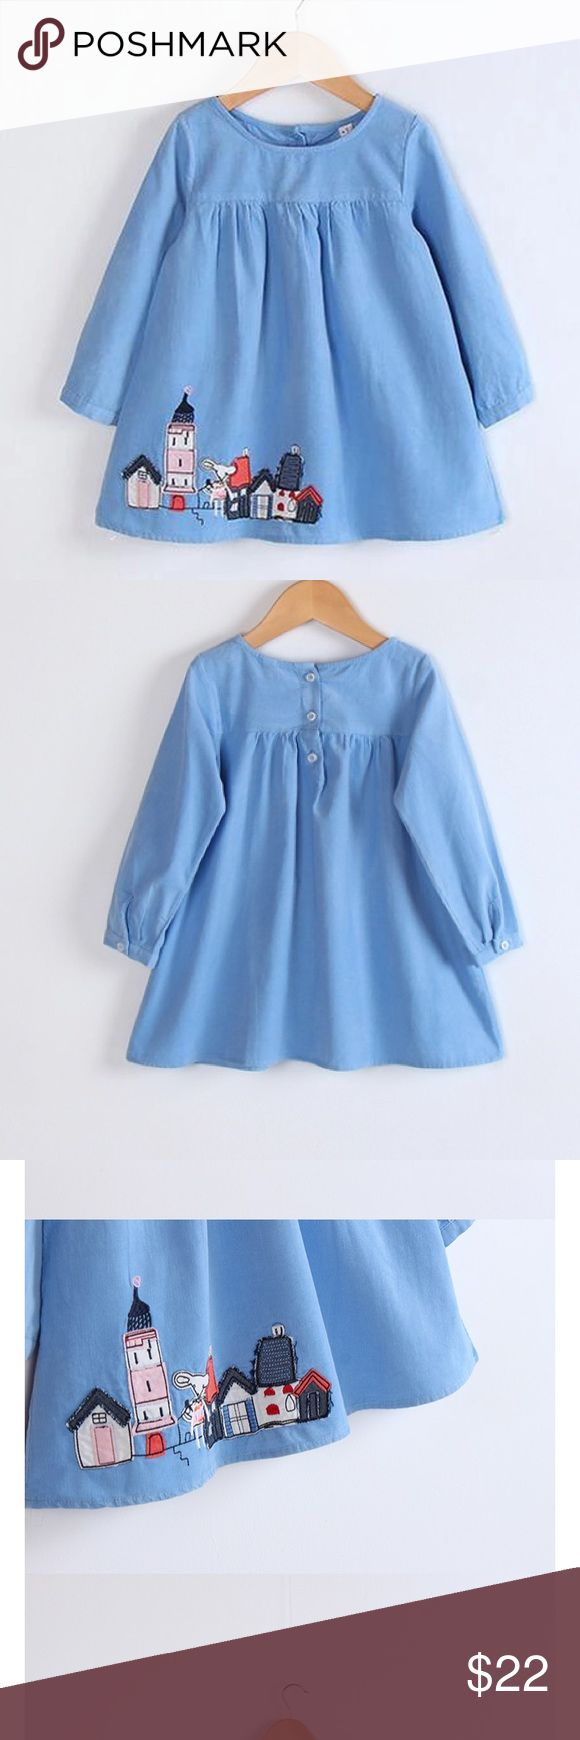 Baby blue dress ✨ Adorable blue dress, looks great with white tights and Mary Janes. Dresses Casual